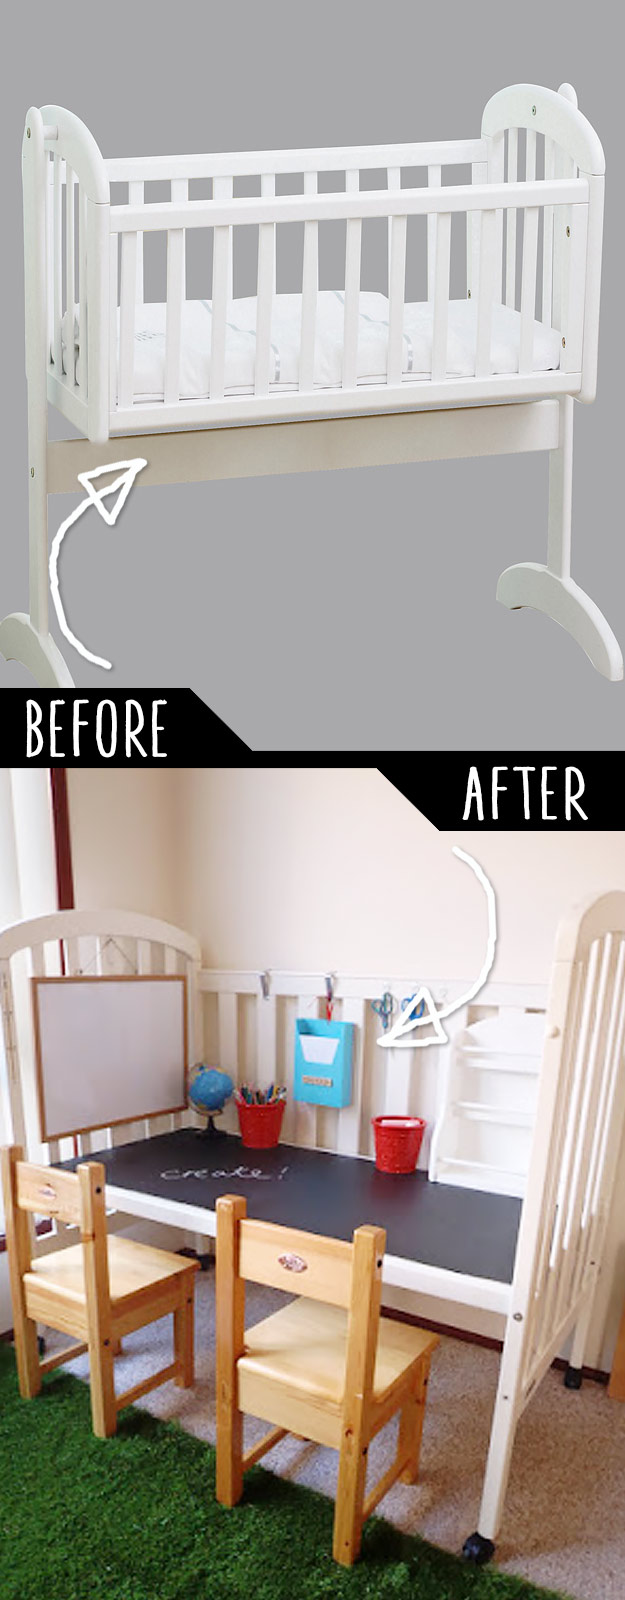 DIY Furniture Hacks   Repurposed Cot   Cool Ideas for Creative Do It Yourself Furniture Made From Things You Might Not Expect #diy